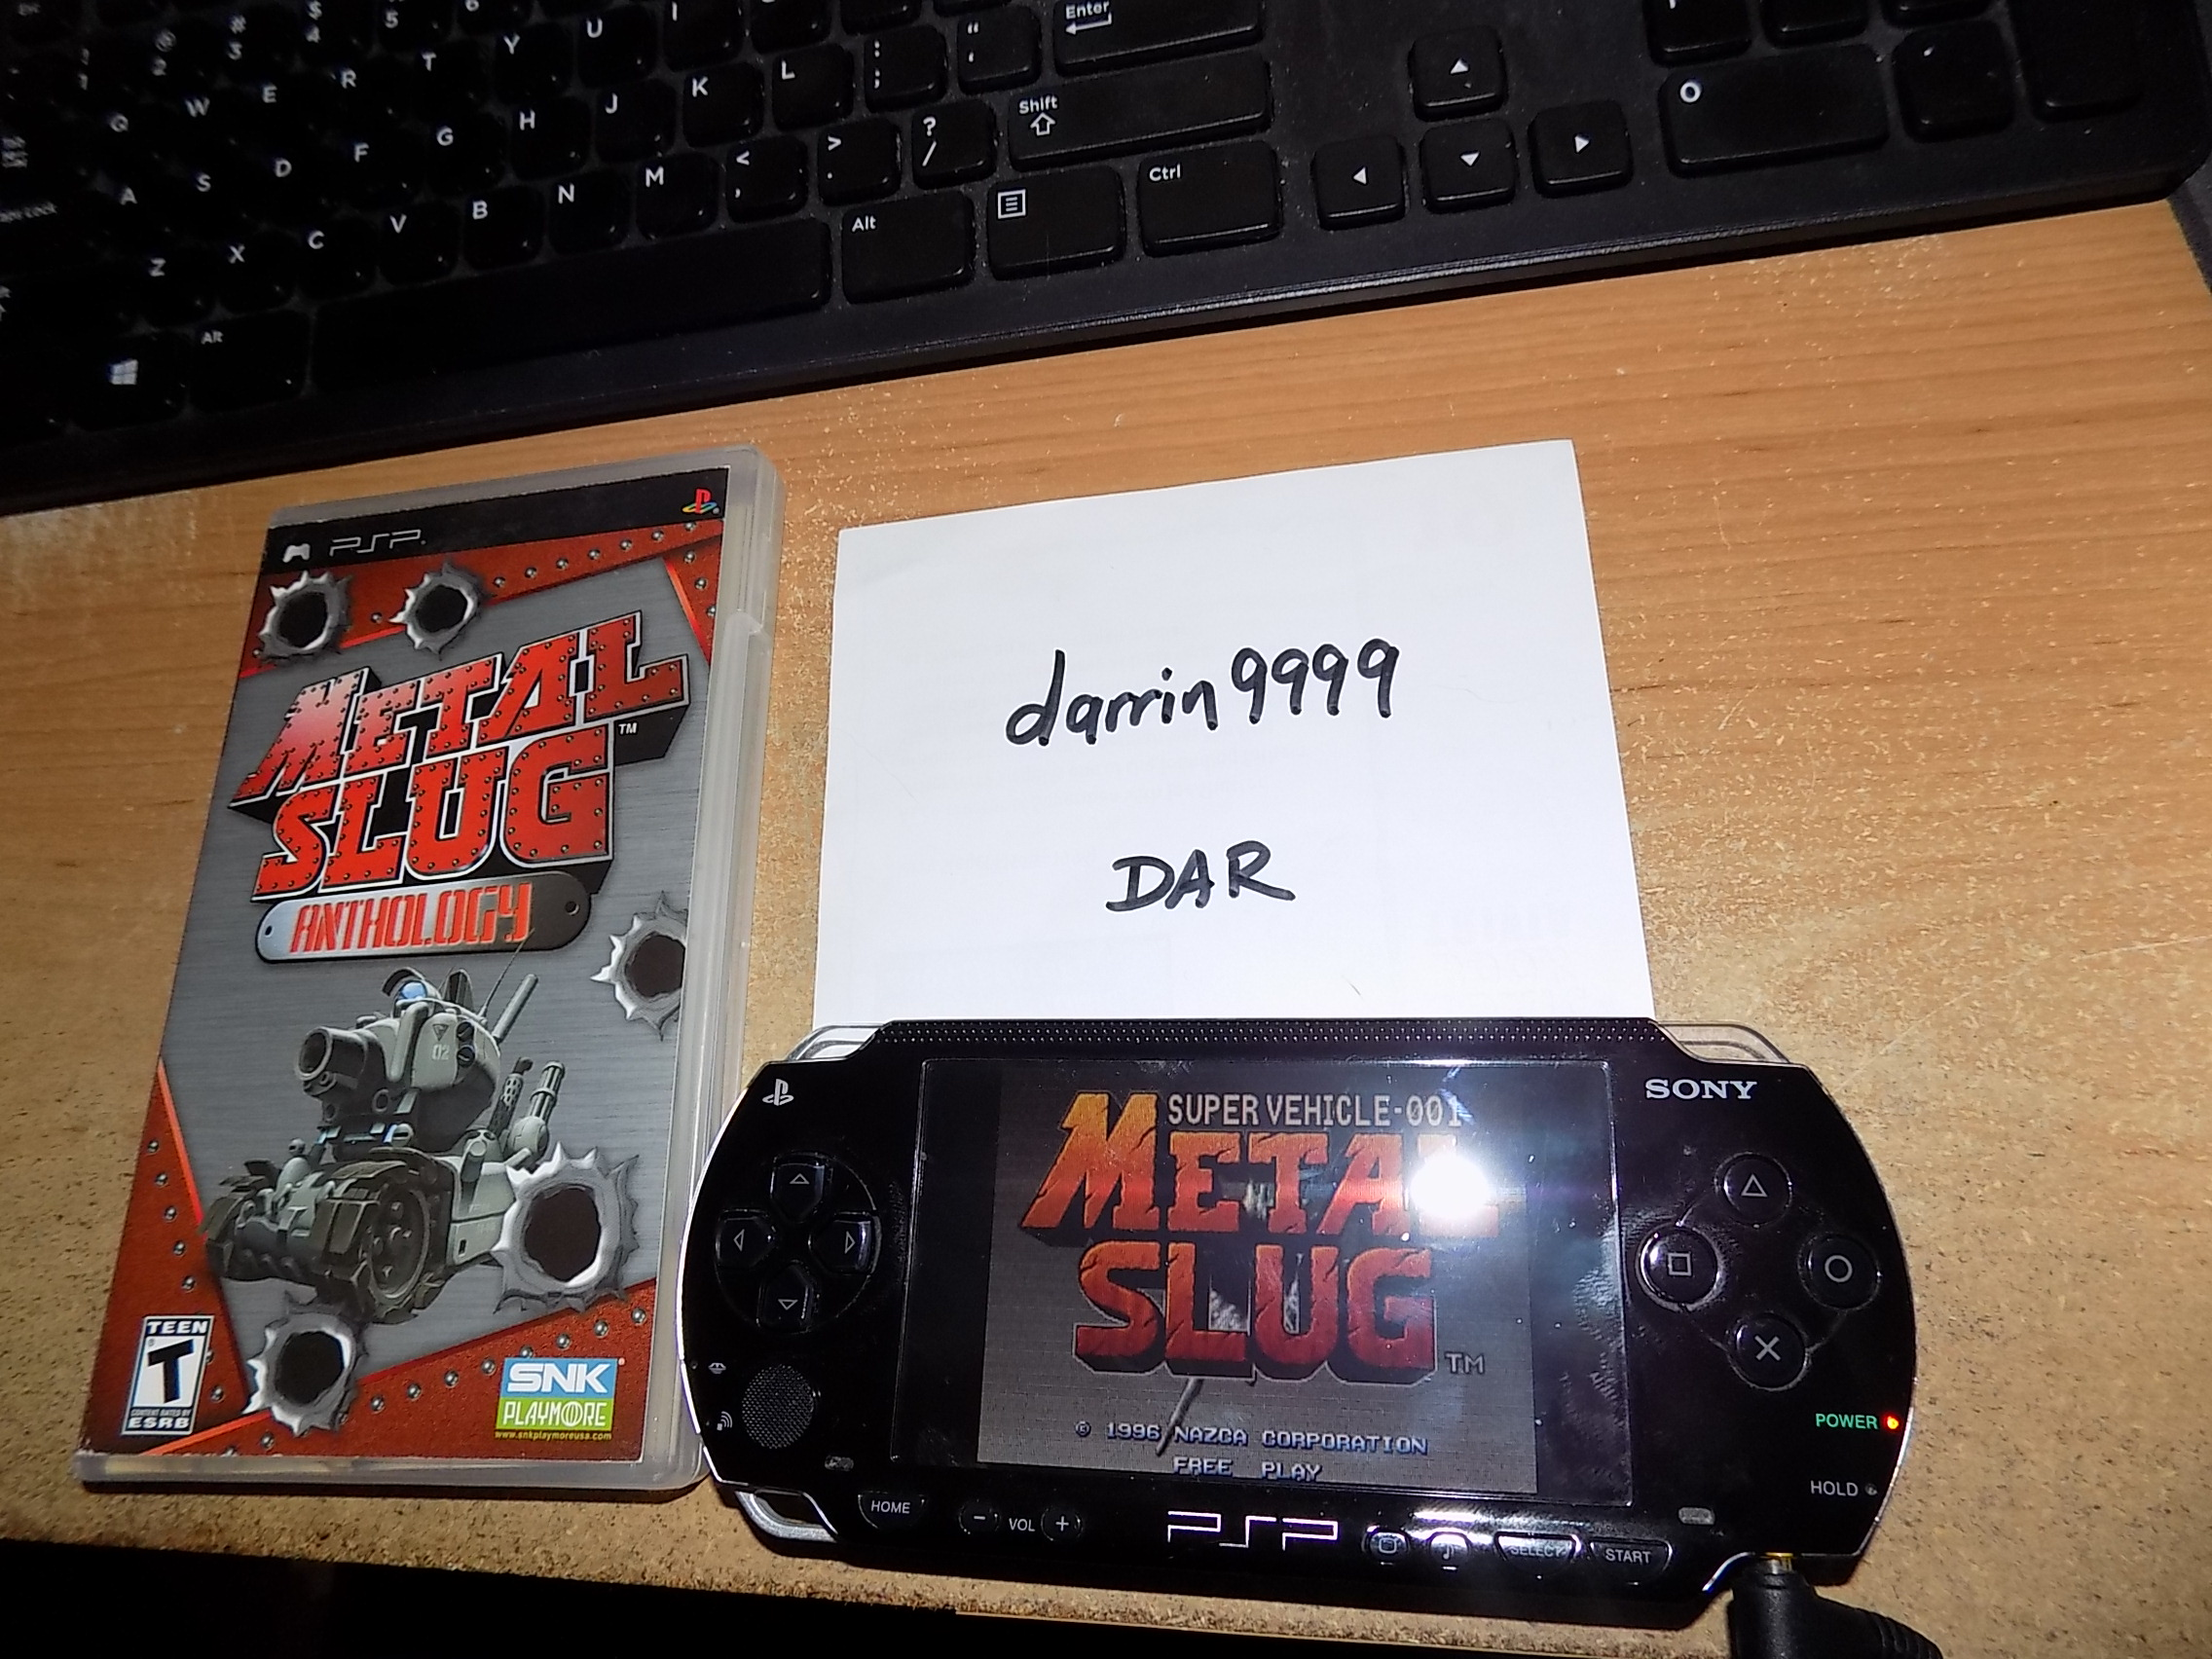 darrin9999: Metal Slug Anthology: Metal Slug (PSP) 42,320 points on 2018-09-14 16:57:12